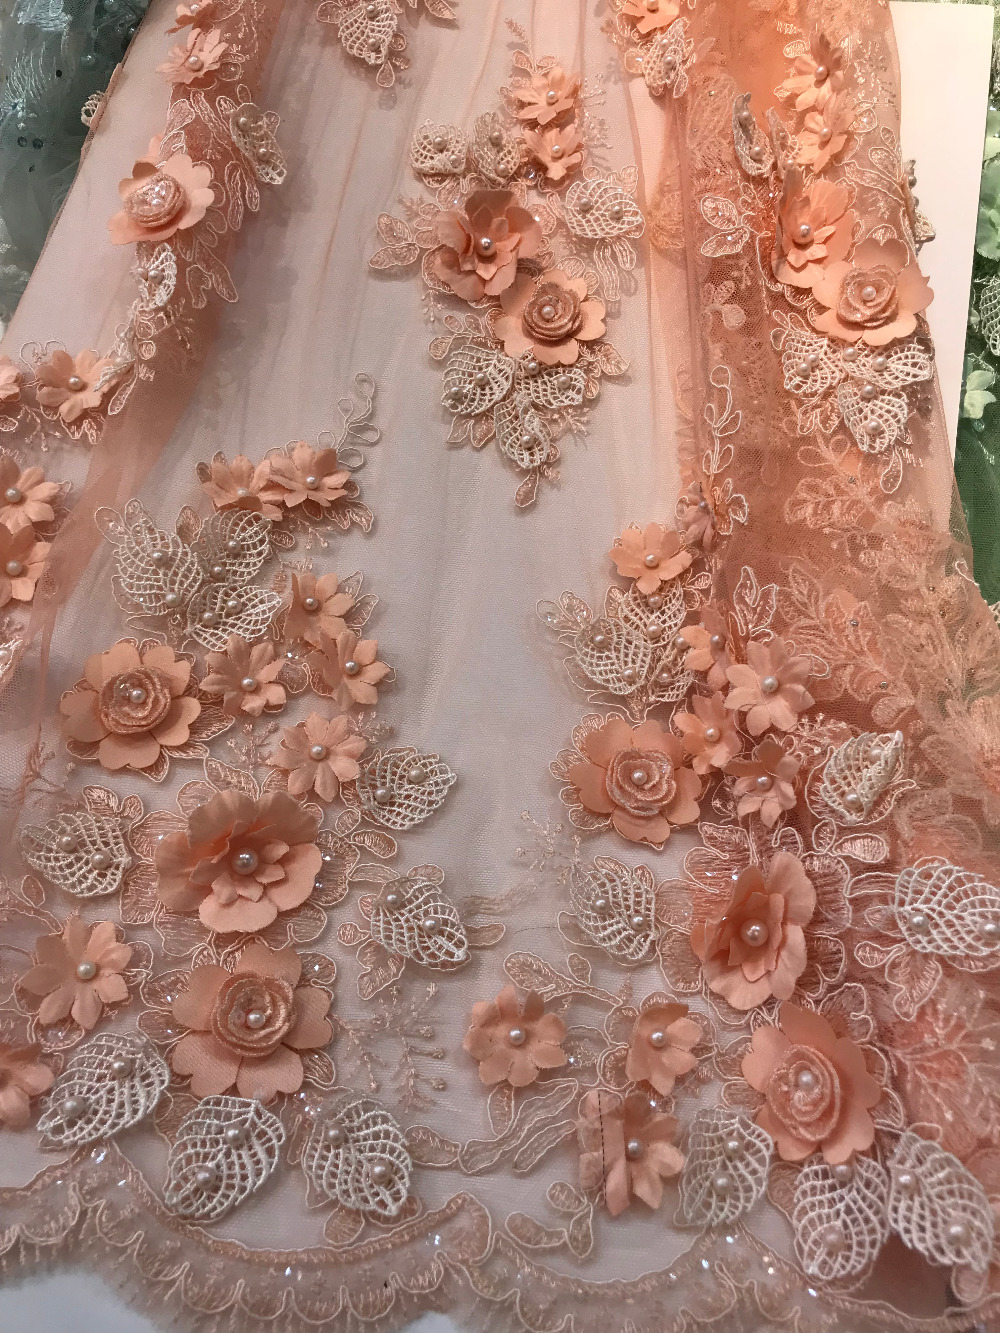 French Net Lace Fabric with beads 3d flower Latest african guipure lace fabric with embroidery mesh nigerian tulle lace fabric